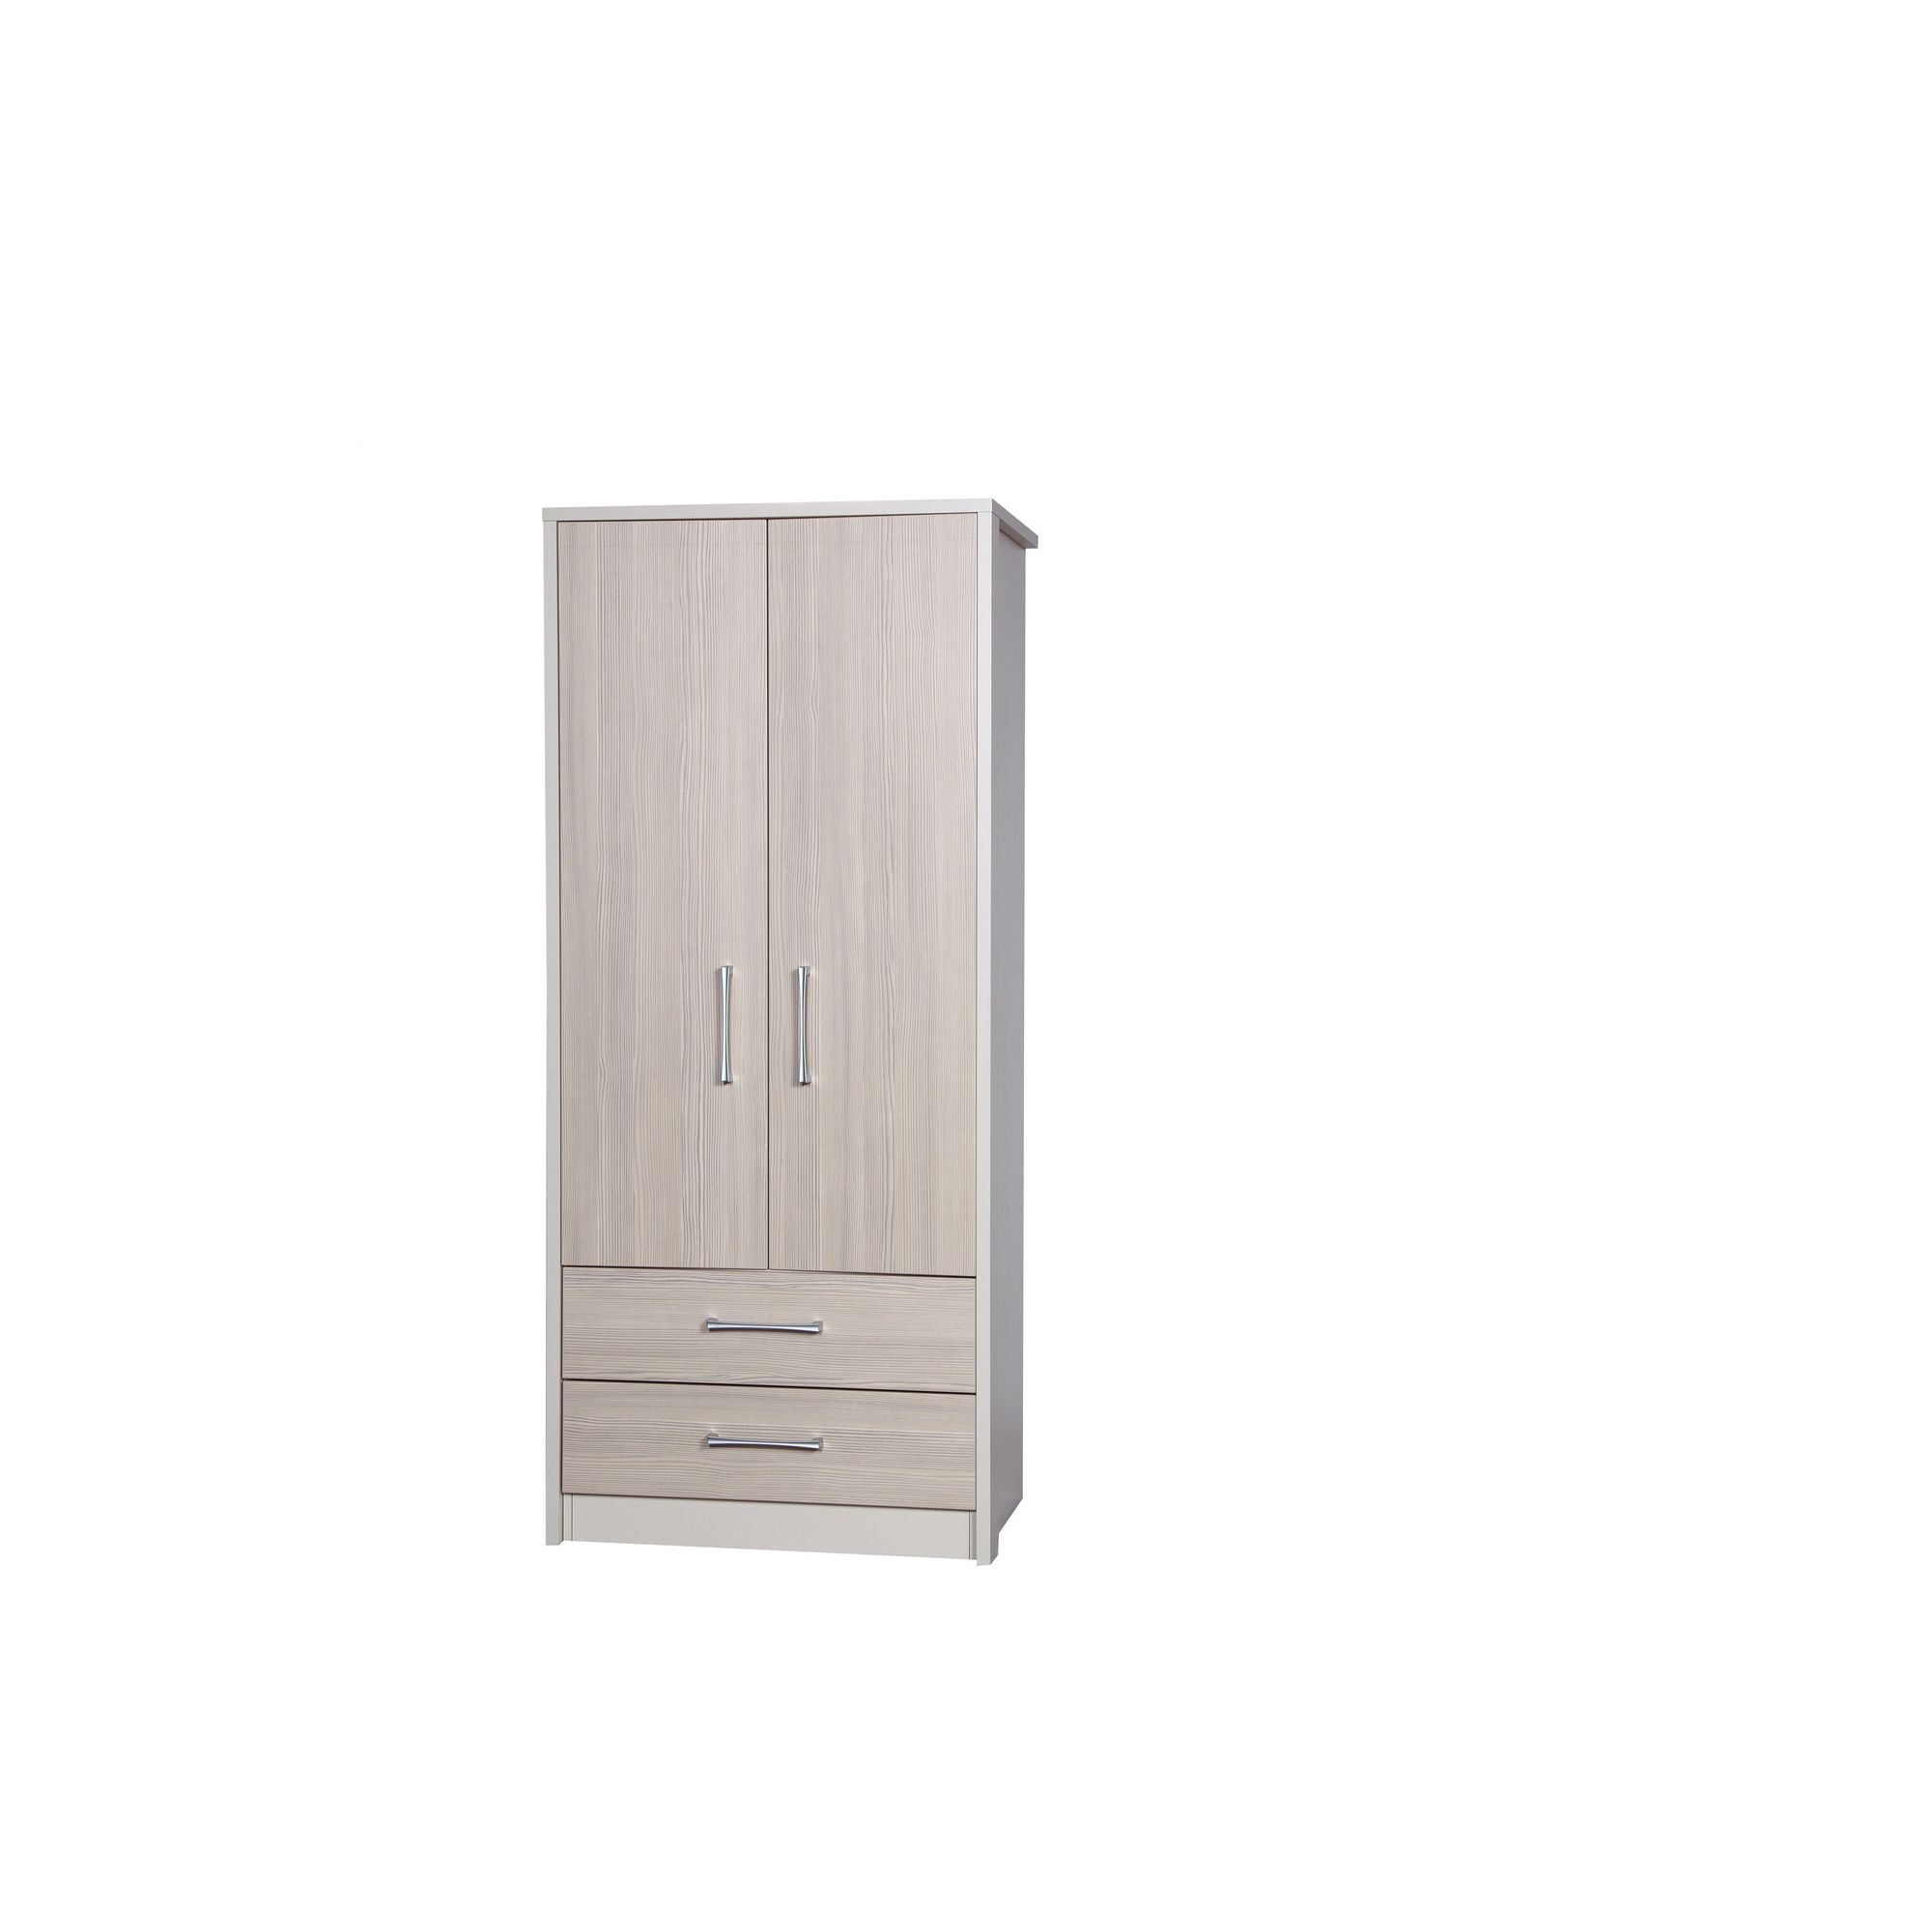 Alto Furniture Avola 2 Drawer Combi Wardrobe - Cream Carcass With Champagne Avola at Tesco Direct